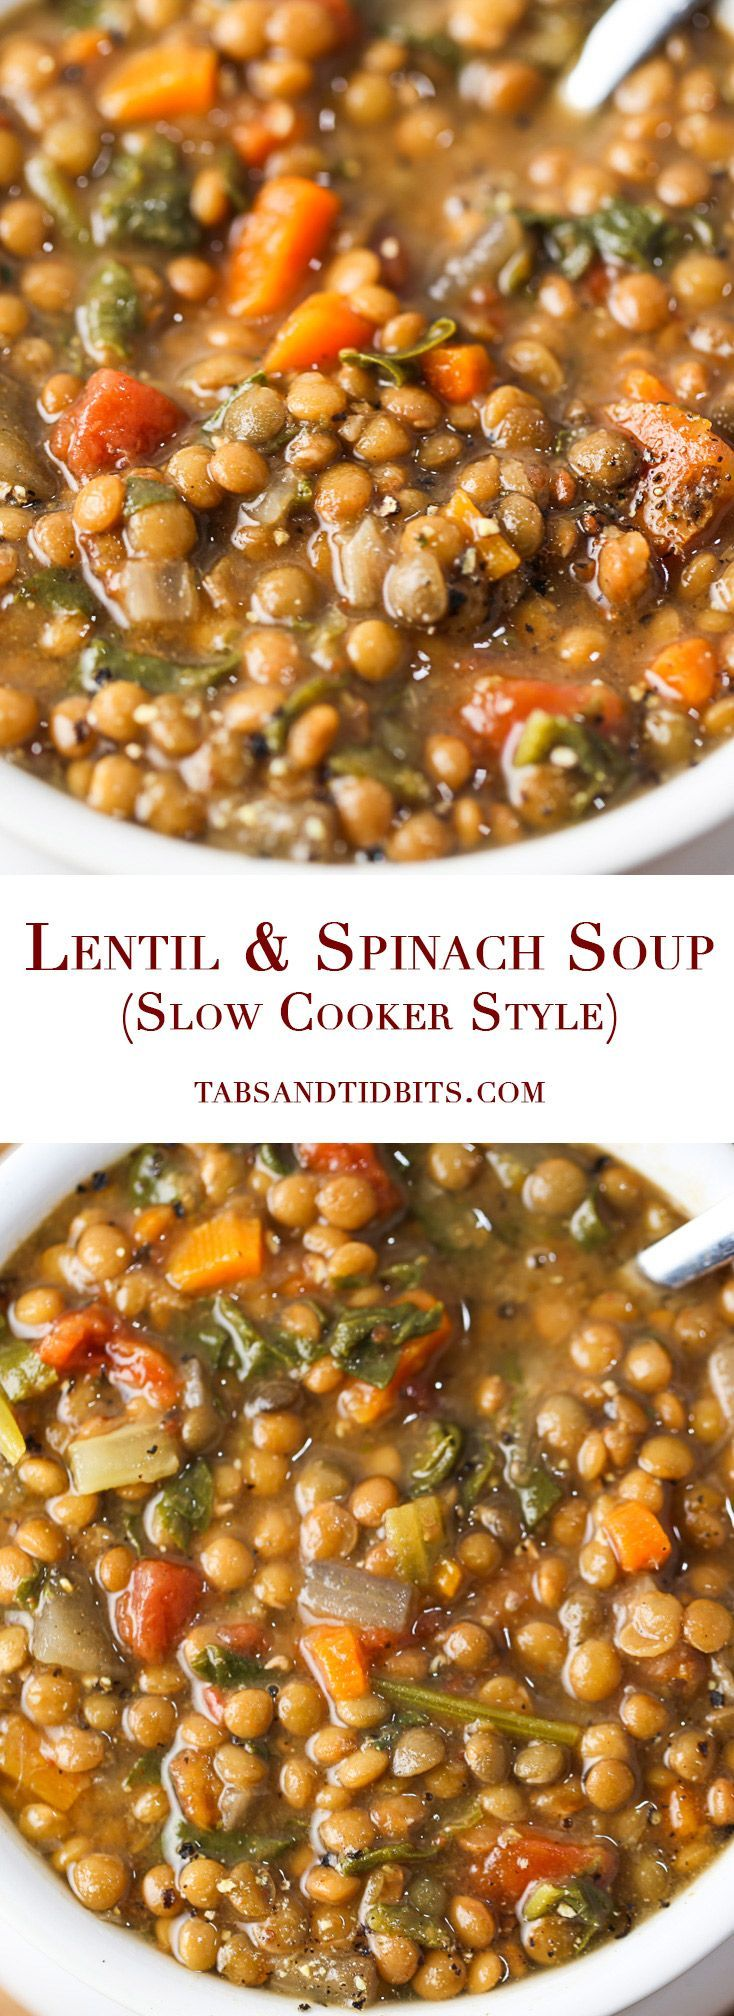 A delicious, nutritious and filling soup with the optional but strongly recommended kick of spice